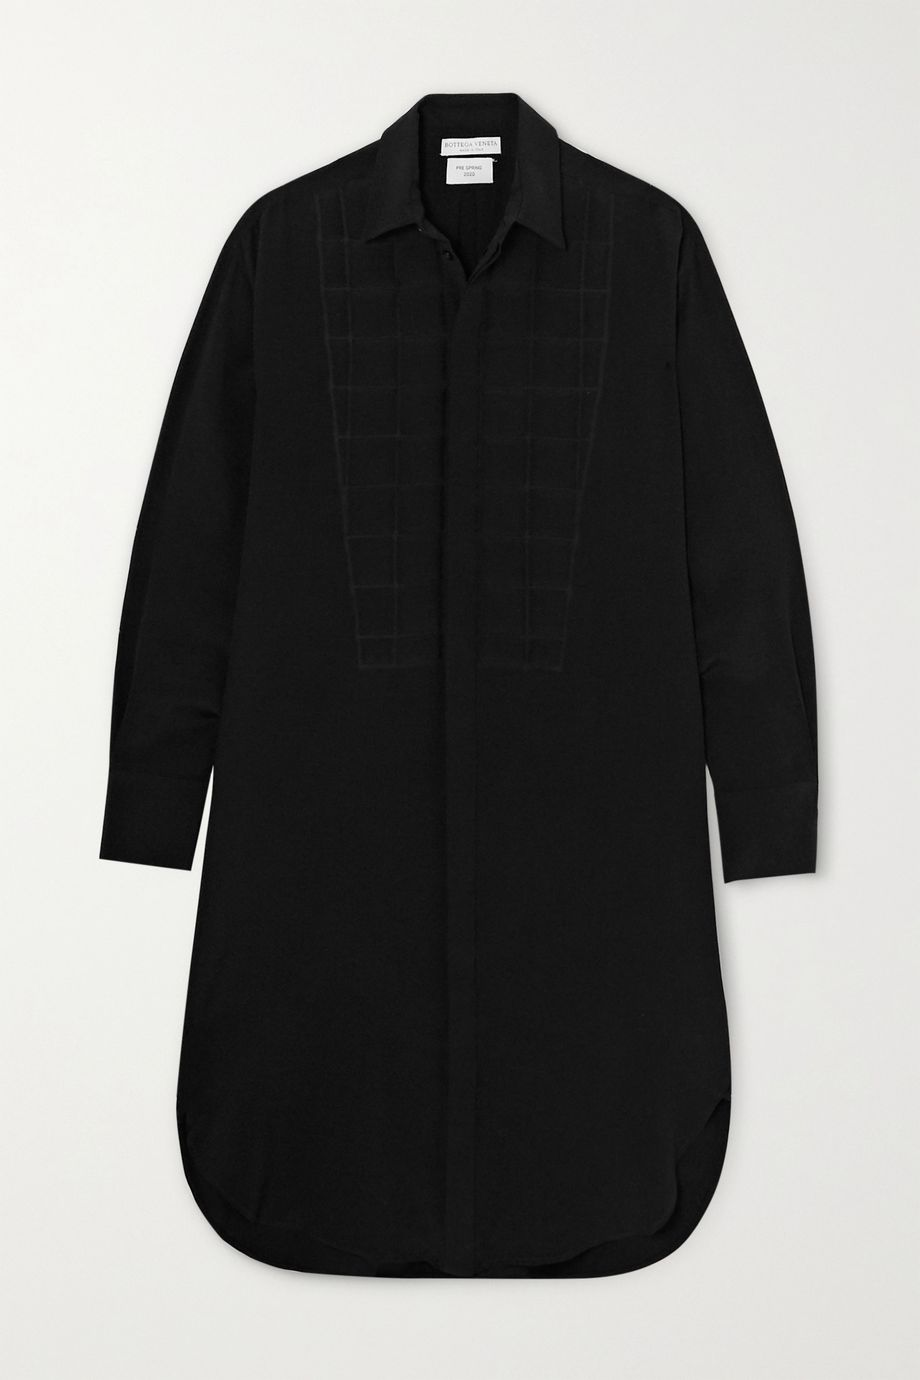 Bottega Veneta Quilted silk crepe de chine shirt dress